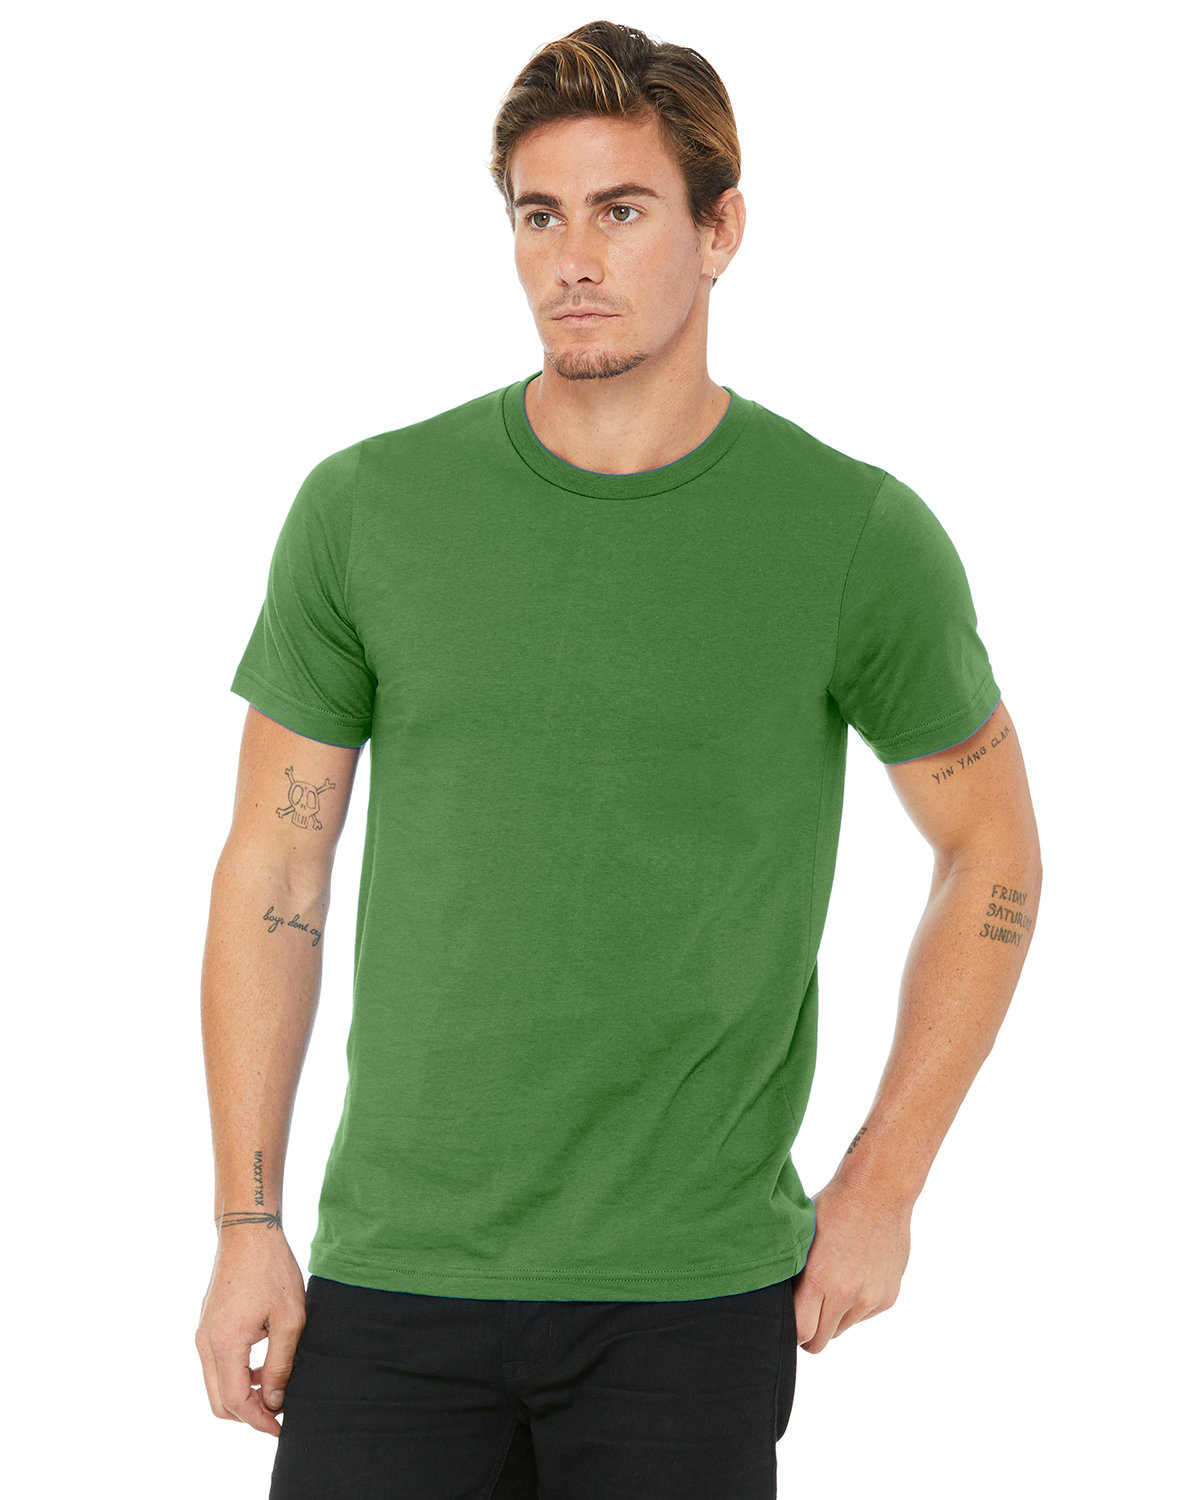 Bella + Canvas Unisex Made In The USA Jersey T-Shirt LEAF